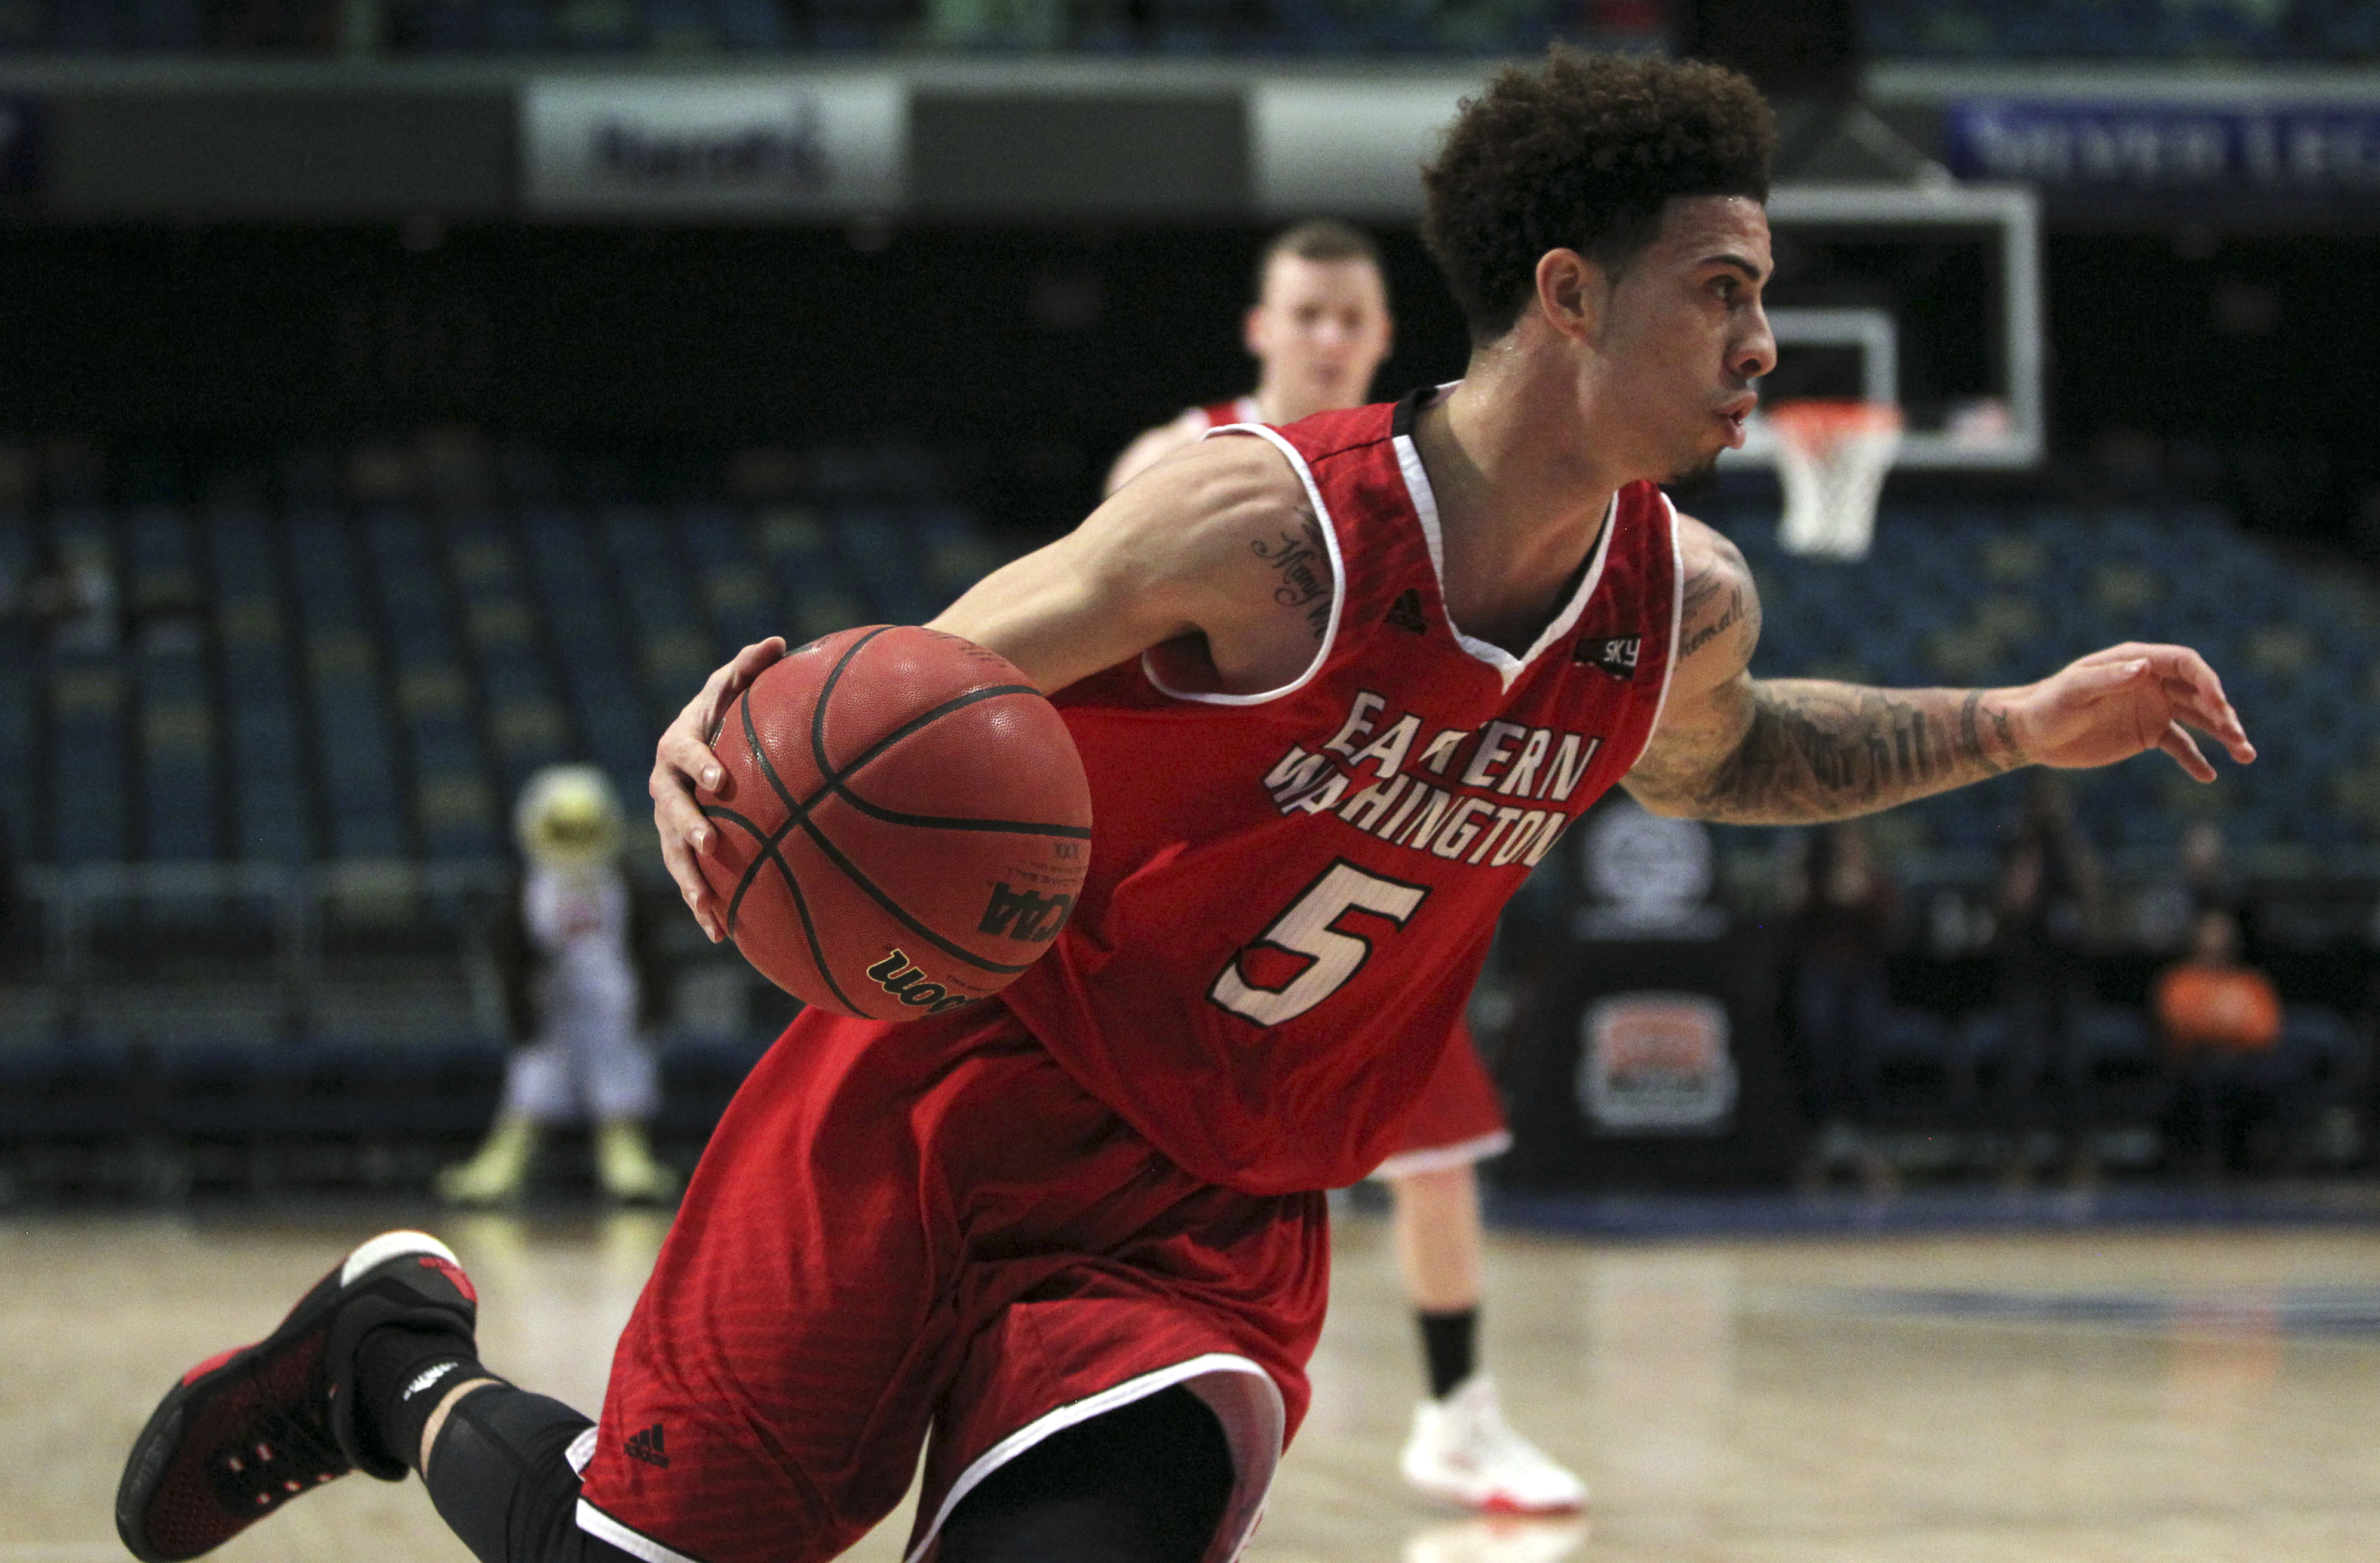 Eastern Washington guard Austin McBroon (5) drives to the basket during the first half of an NCAA college basketball game against Idaho in the Big Sky Conference men's tournament in Reno, Nev., Thursday, March 10, 2016. (AP Photo/Lance Iversen)